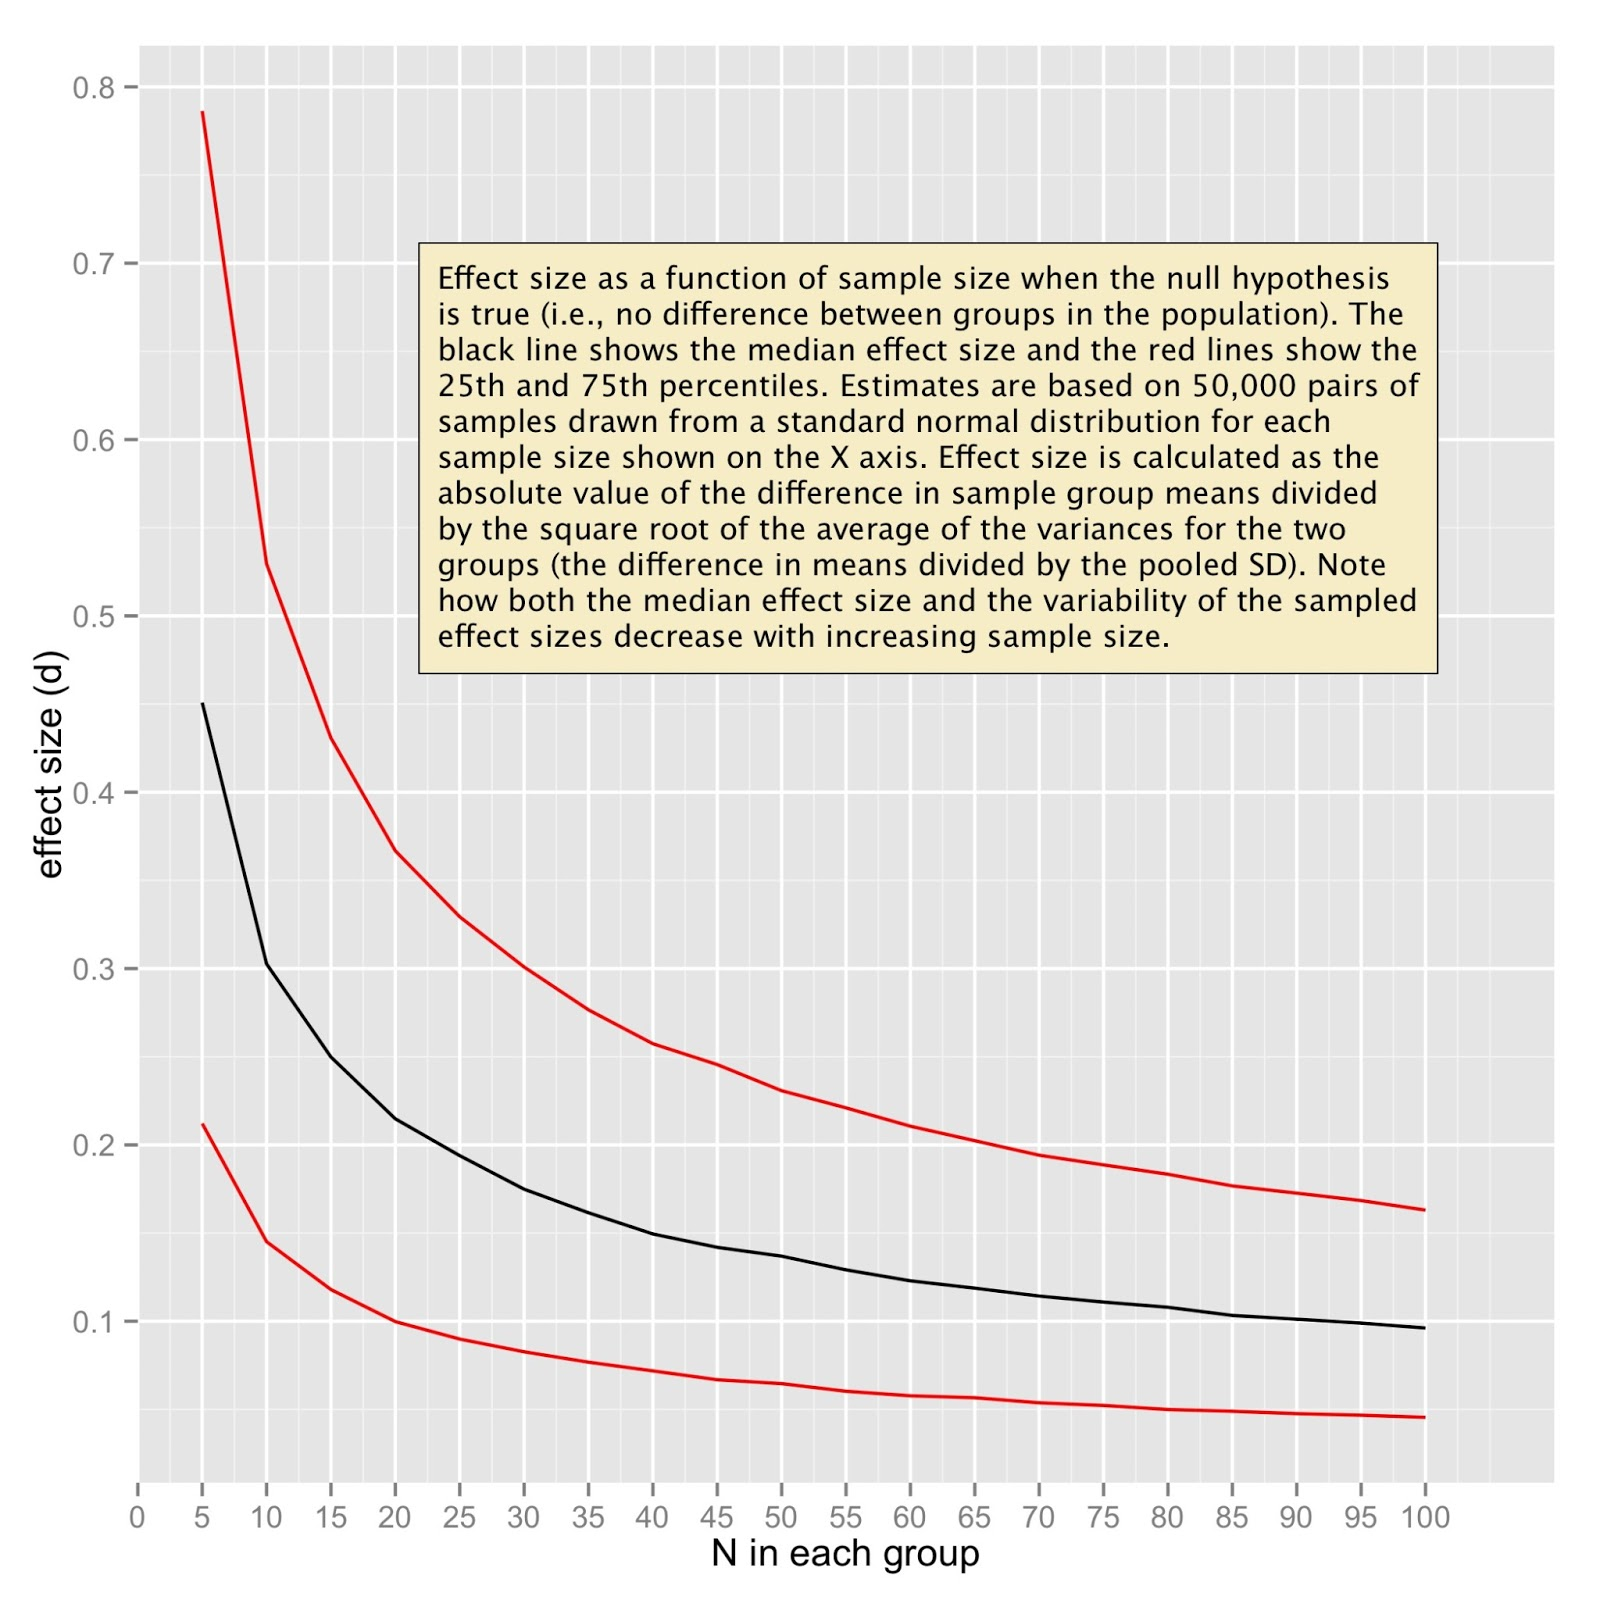 Effect size as a function of sample size when the null hypothesis is true